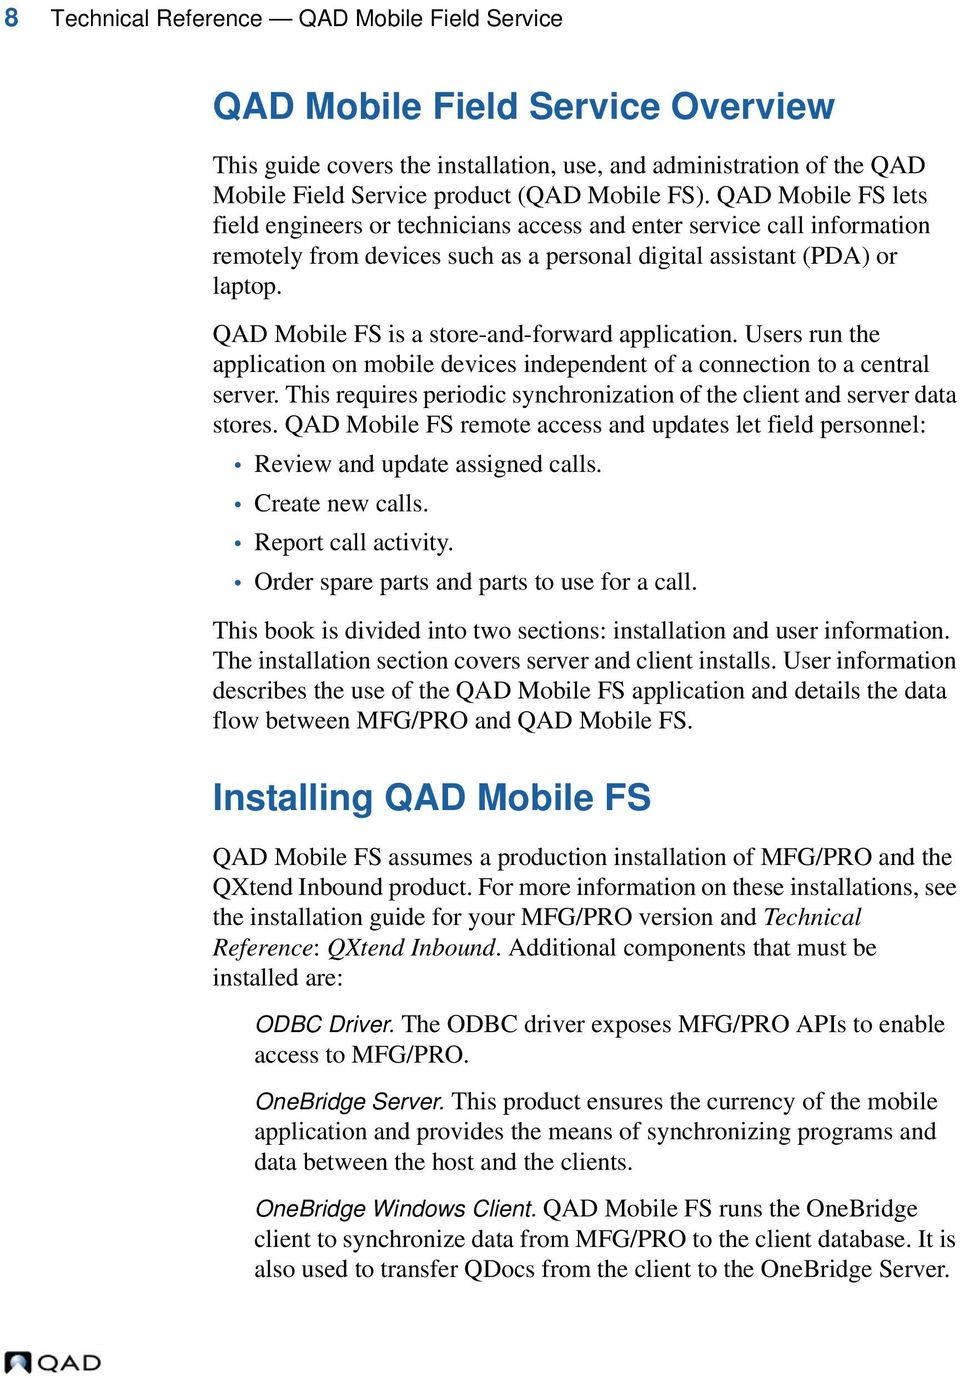 Technical Reference QAD Mobile Field Service  QAD Mobile FS